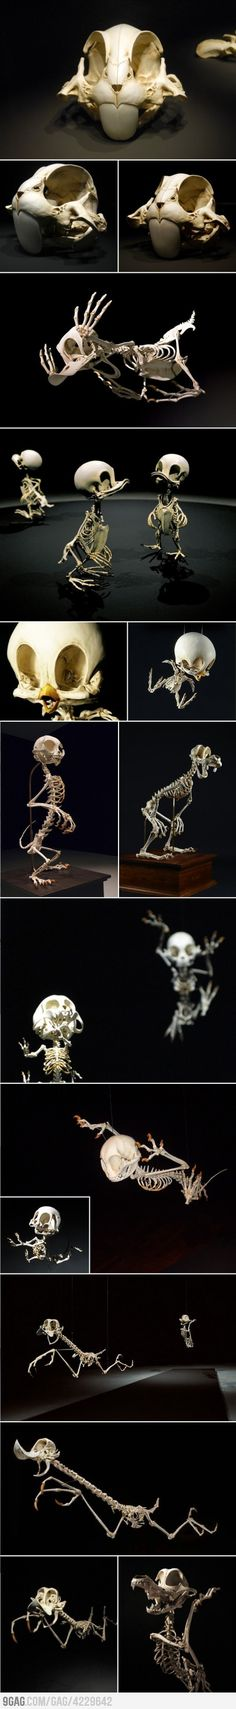 Skeletons of some Cartoon characters  ¡Esqueletos de personajes de cartoons!